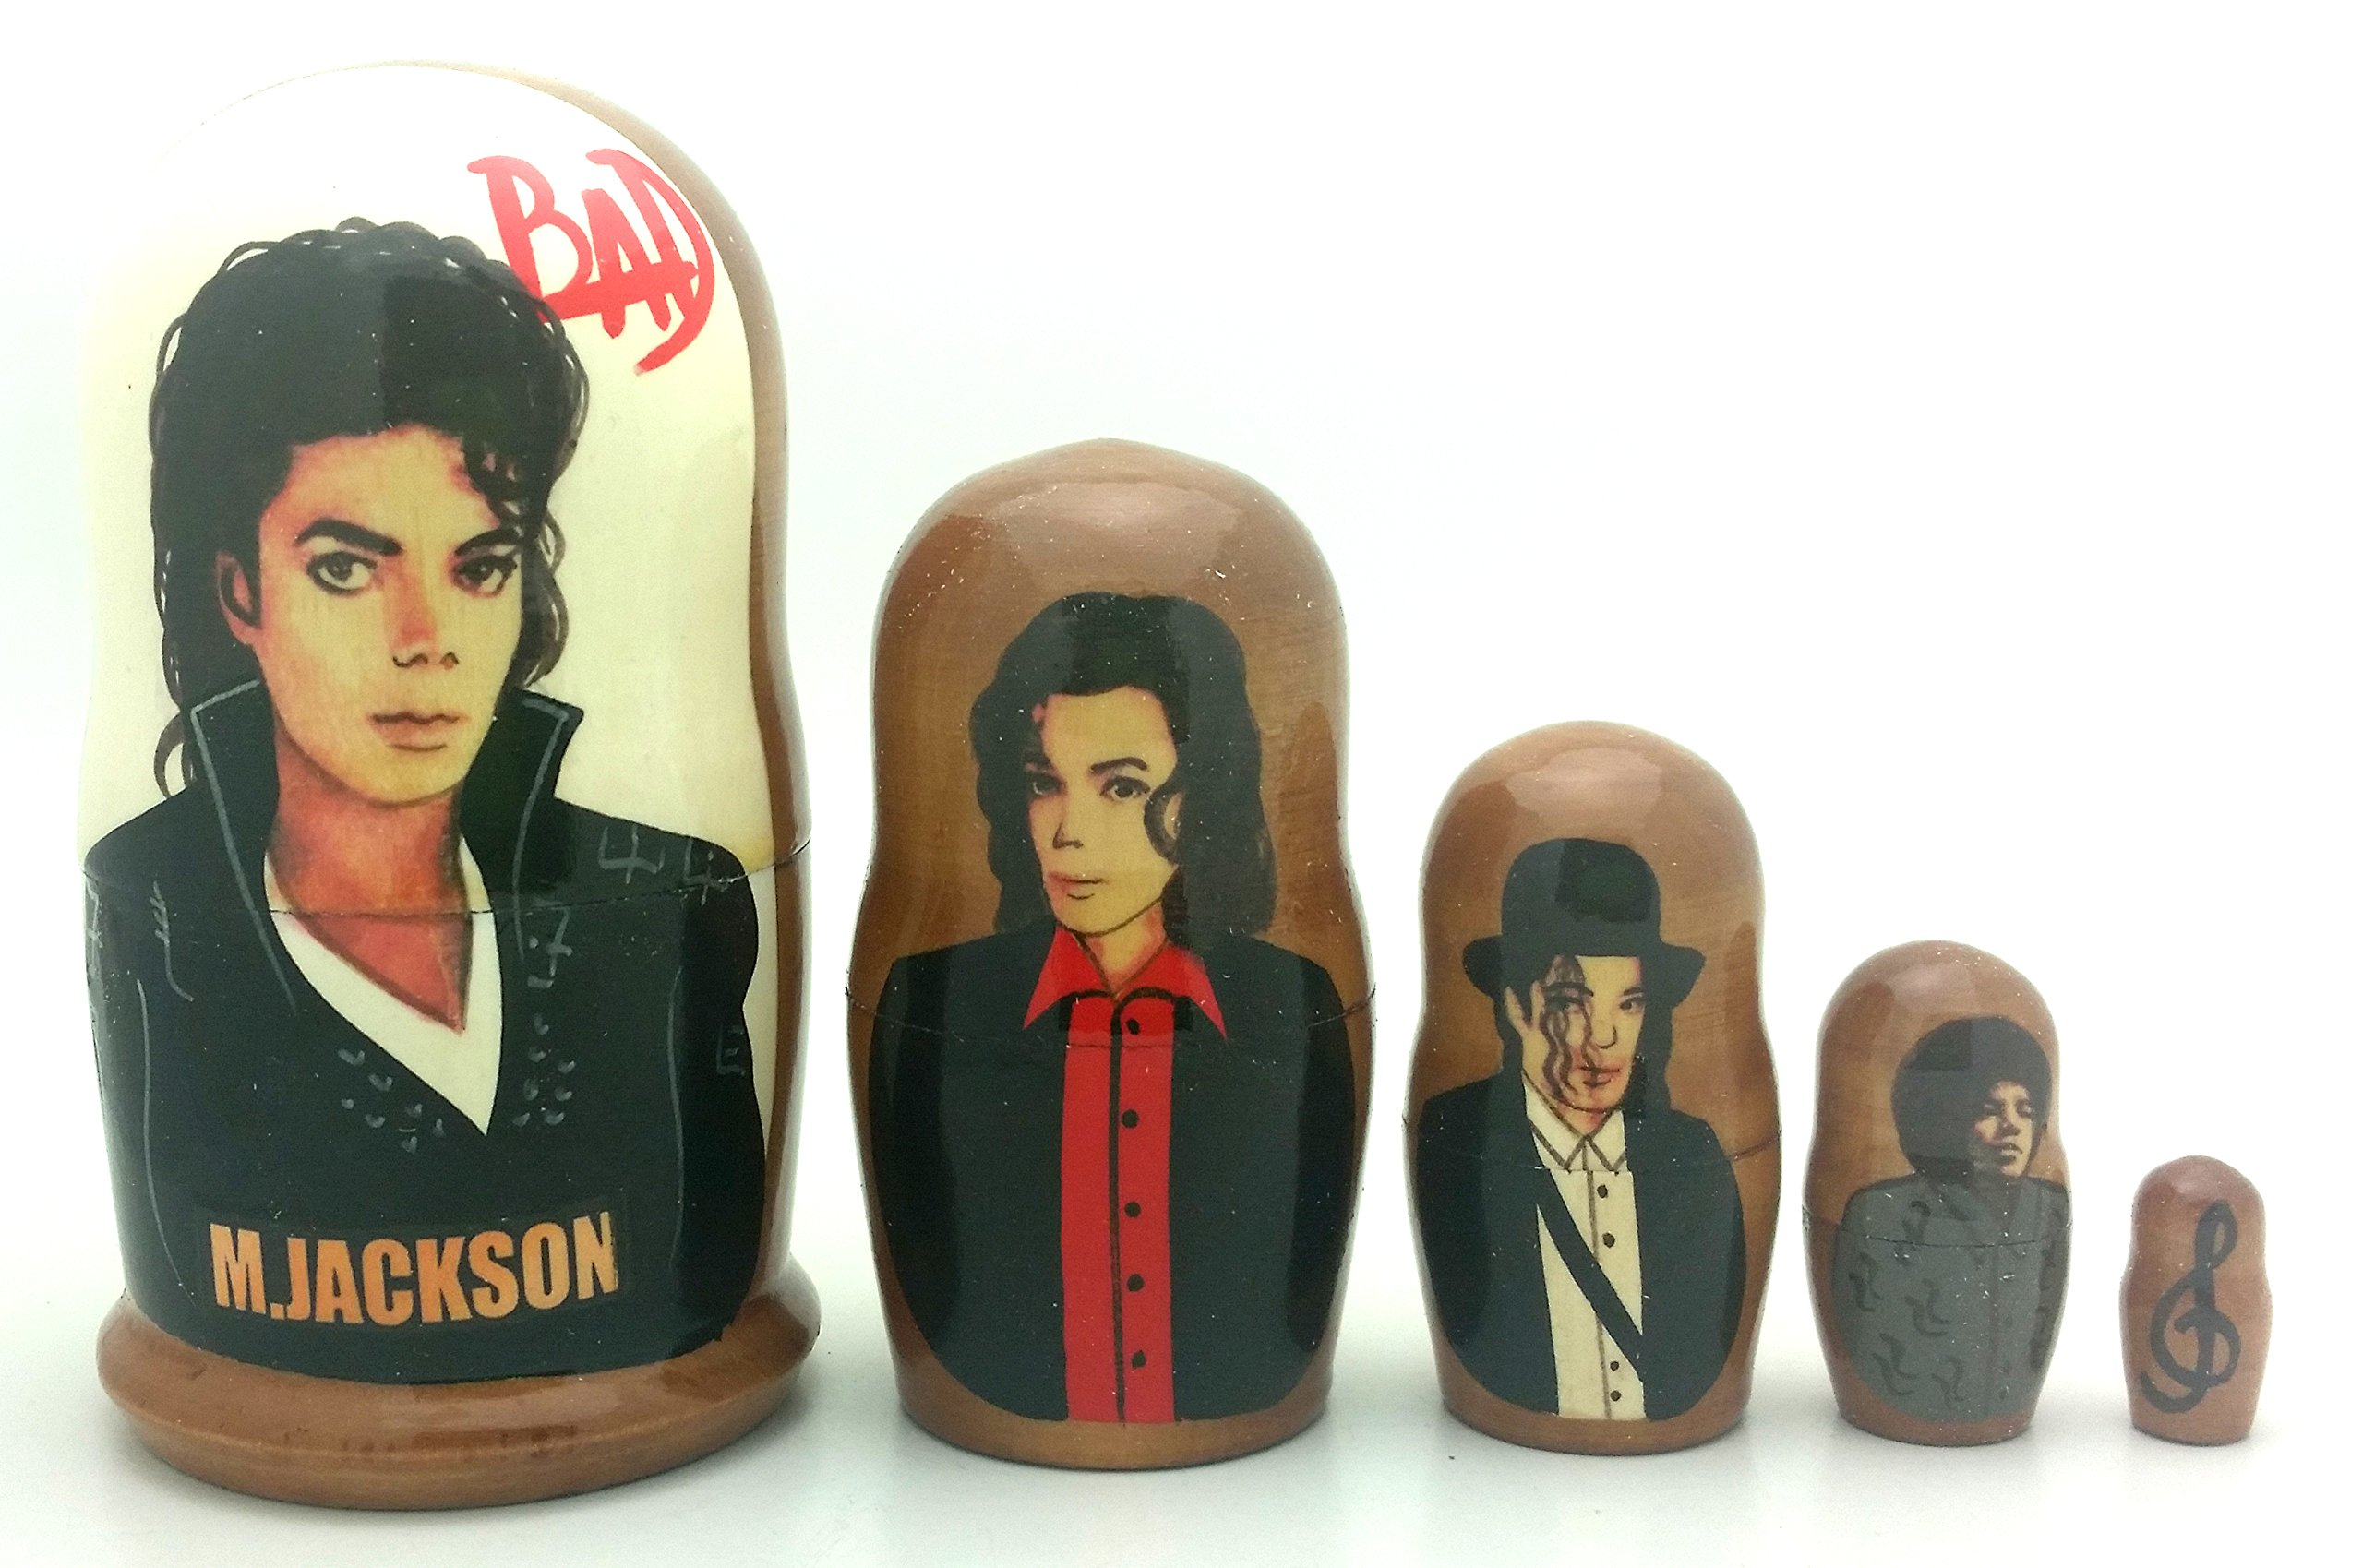 Michael Jackson BAD Russian Nesting dolls 5 piece DOLL Set 4'' Tall by BuyRussianGifts (Image #2)